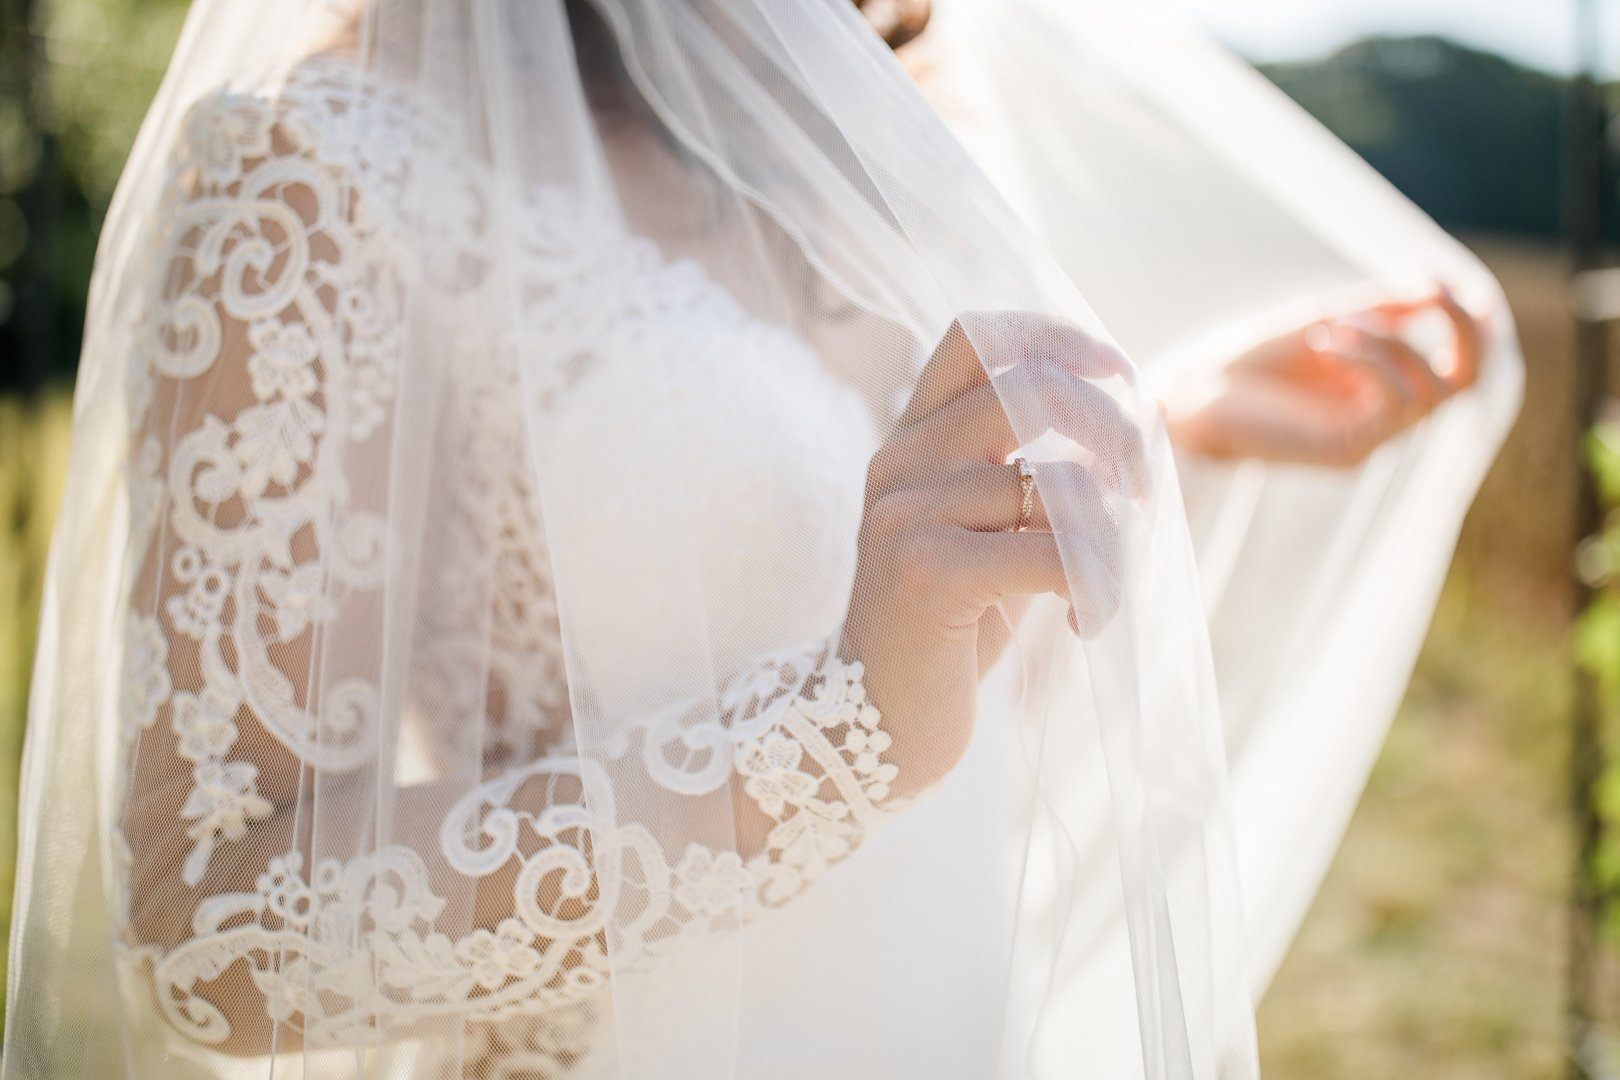 Veil Photograph White Wedding dress Dress Bridal accessory Clothing Bridal veil Bride Lace Bridal clothing Gown Pink Shoulder Fashion accessory Tradition Textile Outerwear Photography Ceremony Peach Wedding Headpiece Embellishment